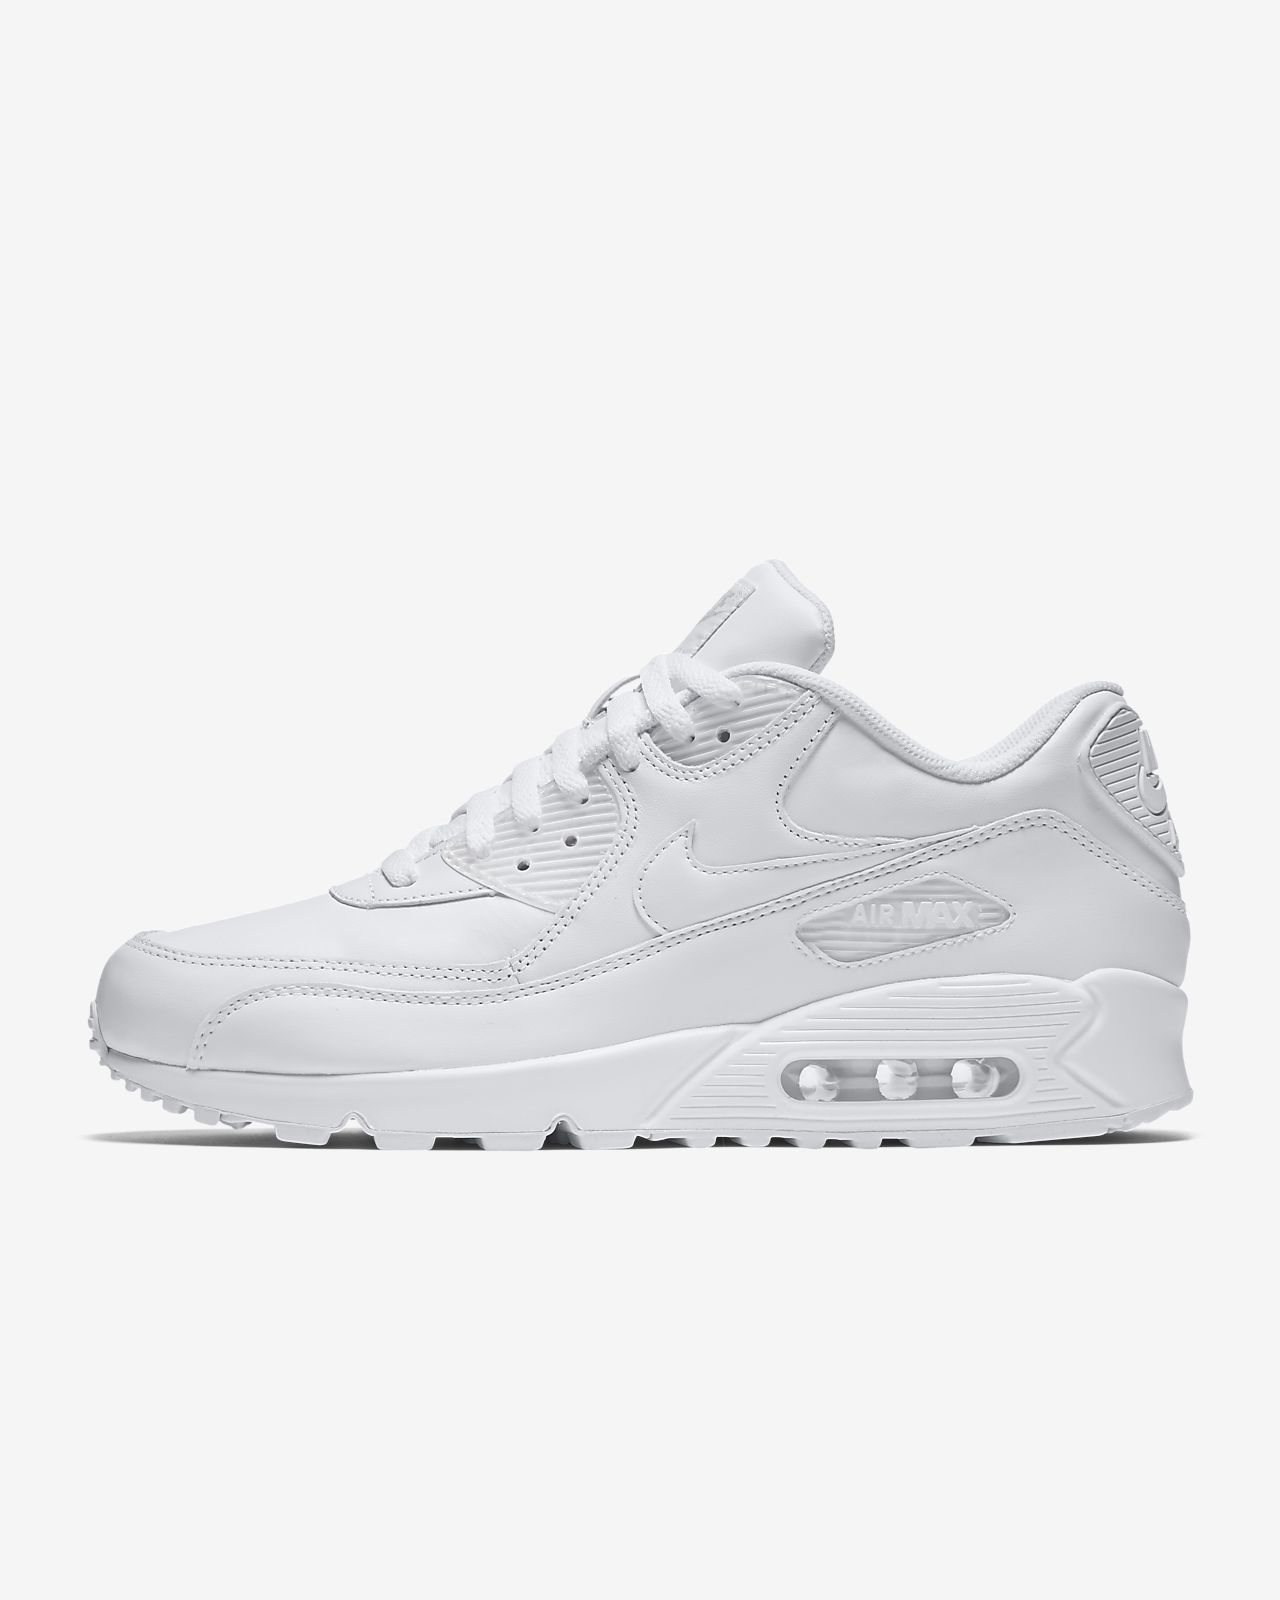 Nike Mens Air Max 90 Leather Lifestyle Running WhiteWhite 302519 113